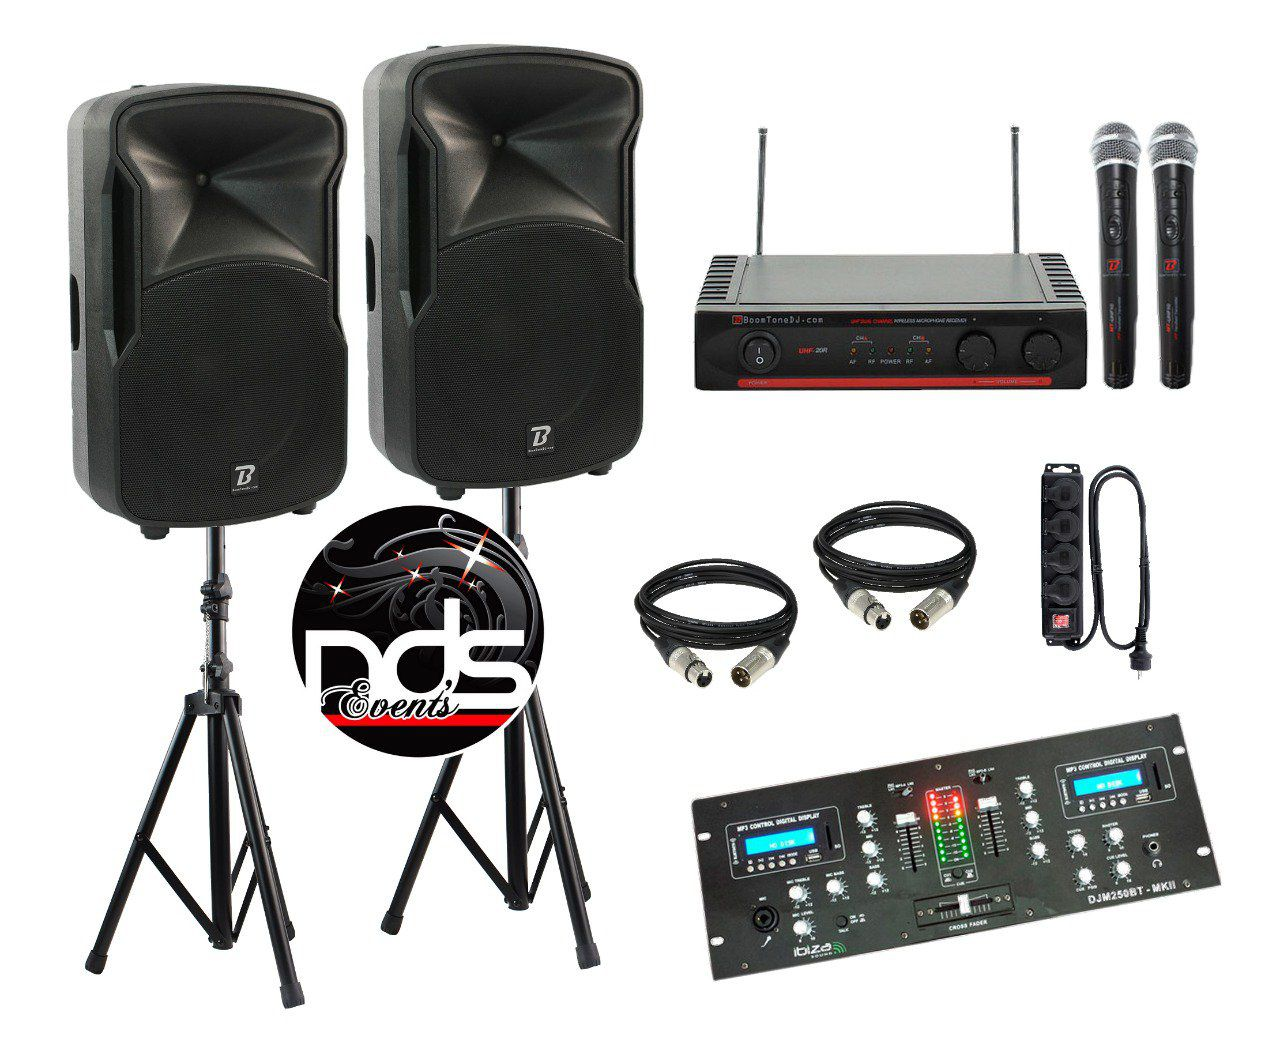 Kit sonorisation complet - Deejay